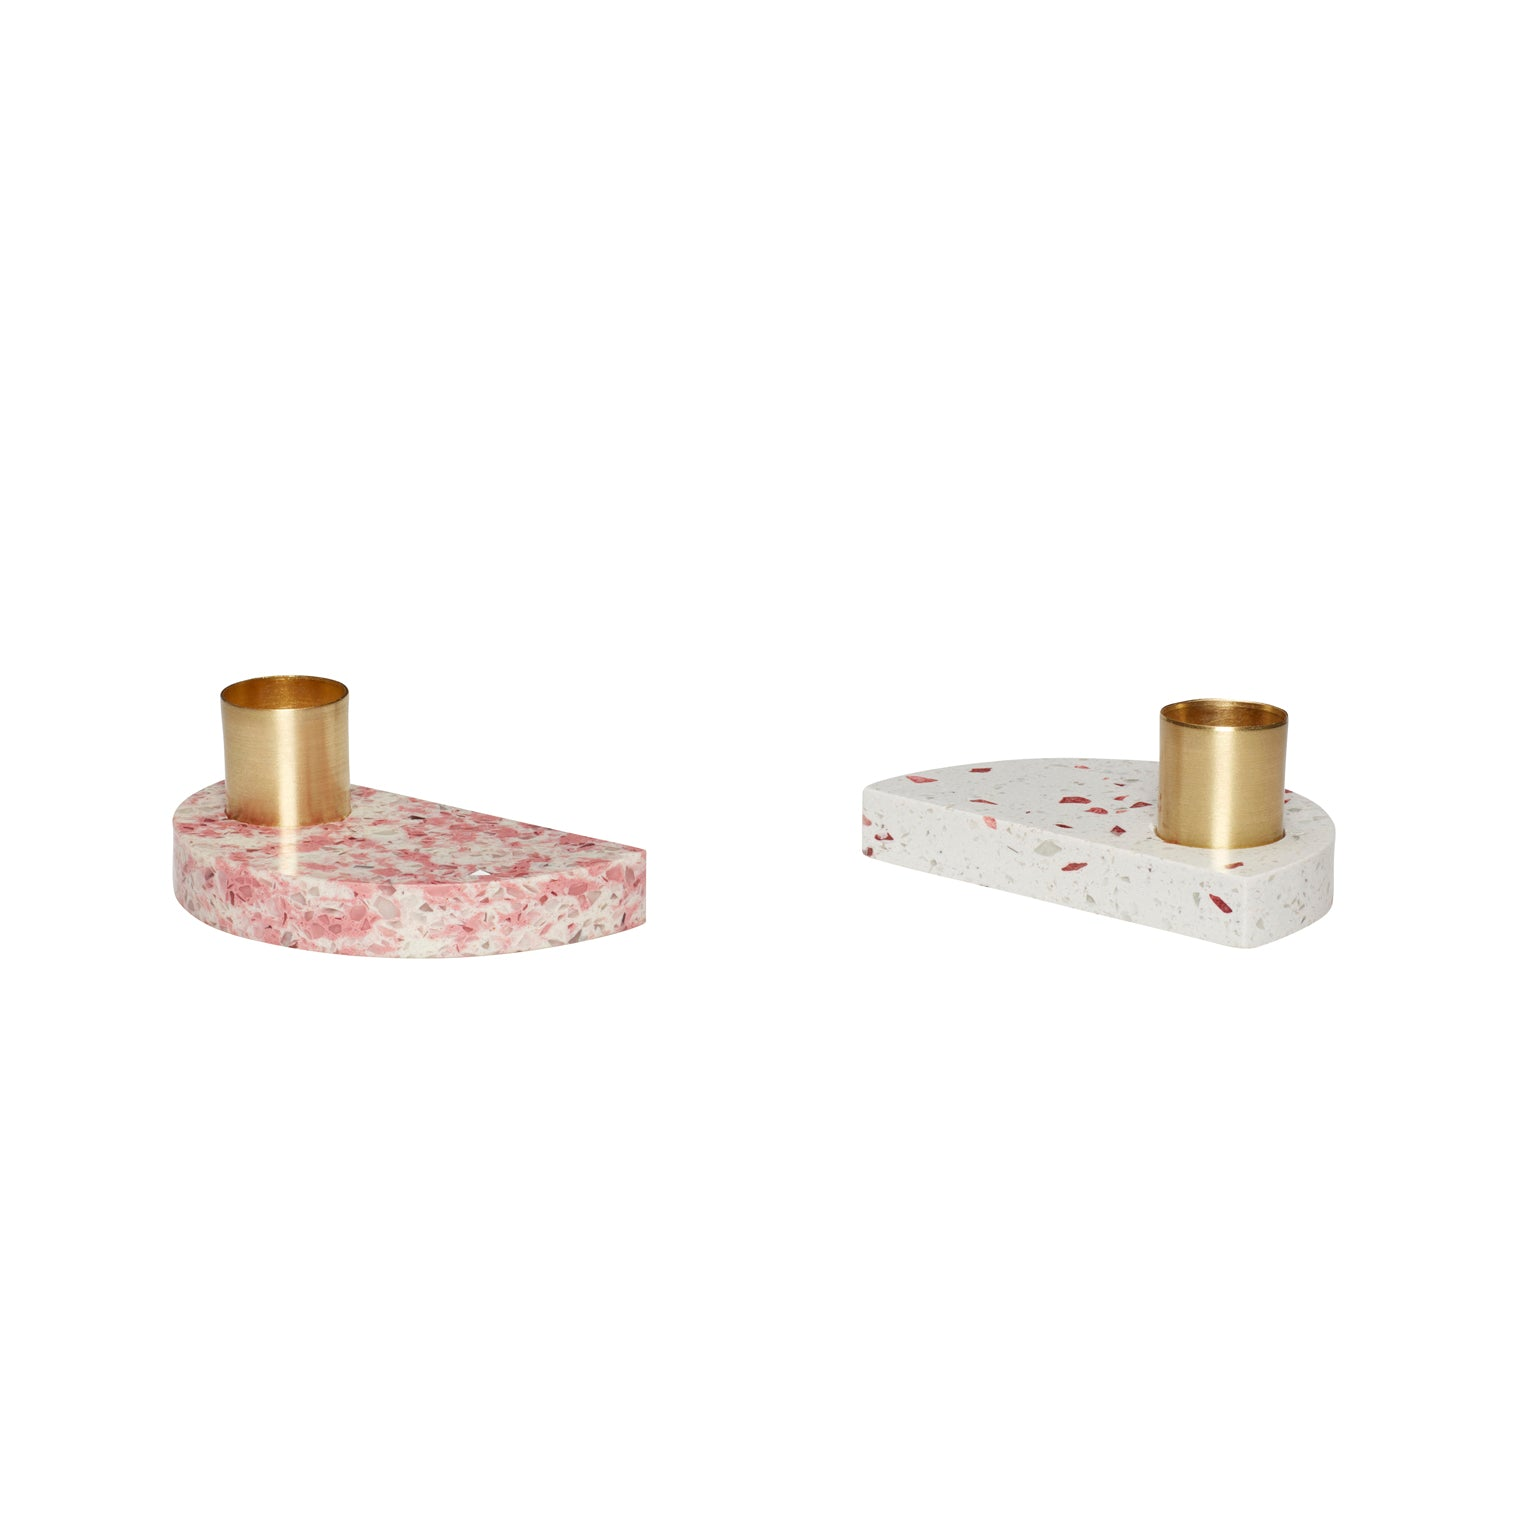 Half Moon Shaped Terrazzo Base Brass Candle Holder in Pink